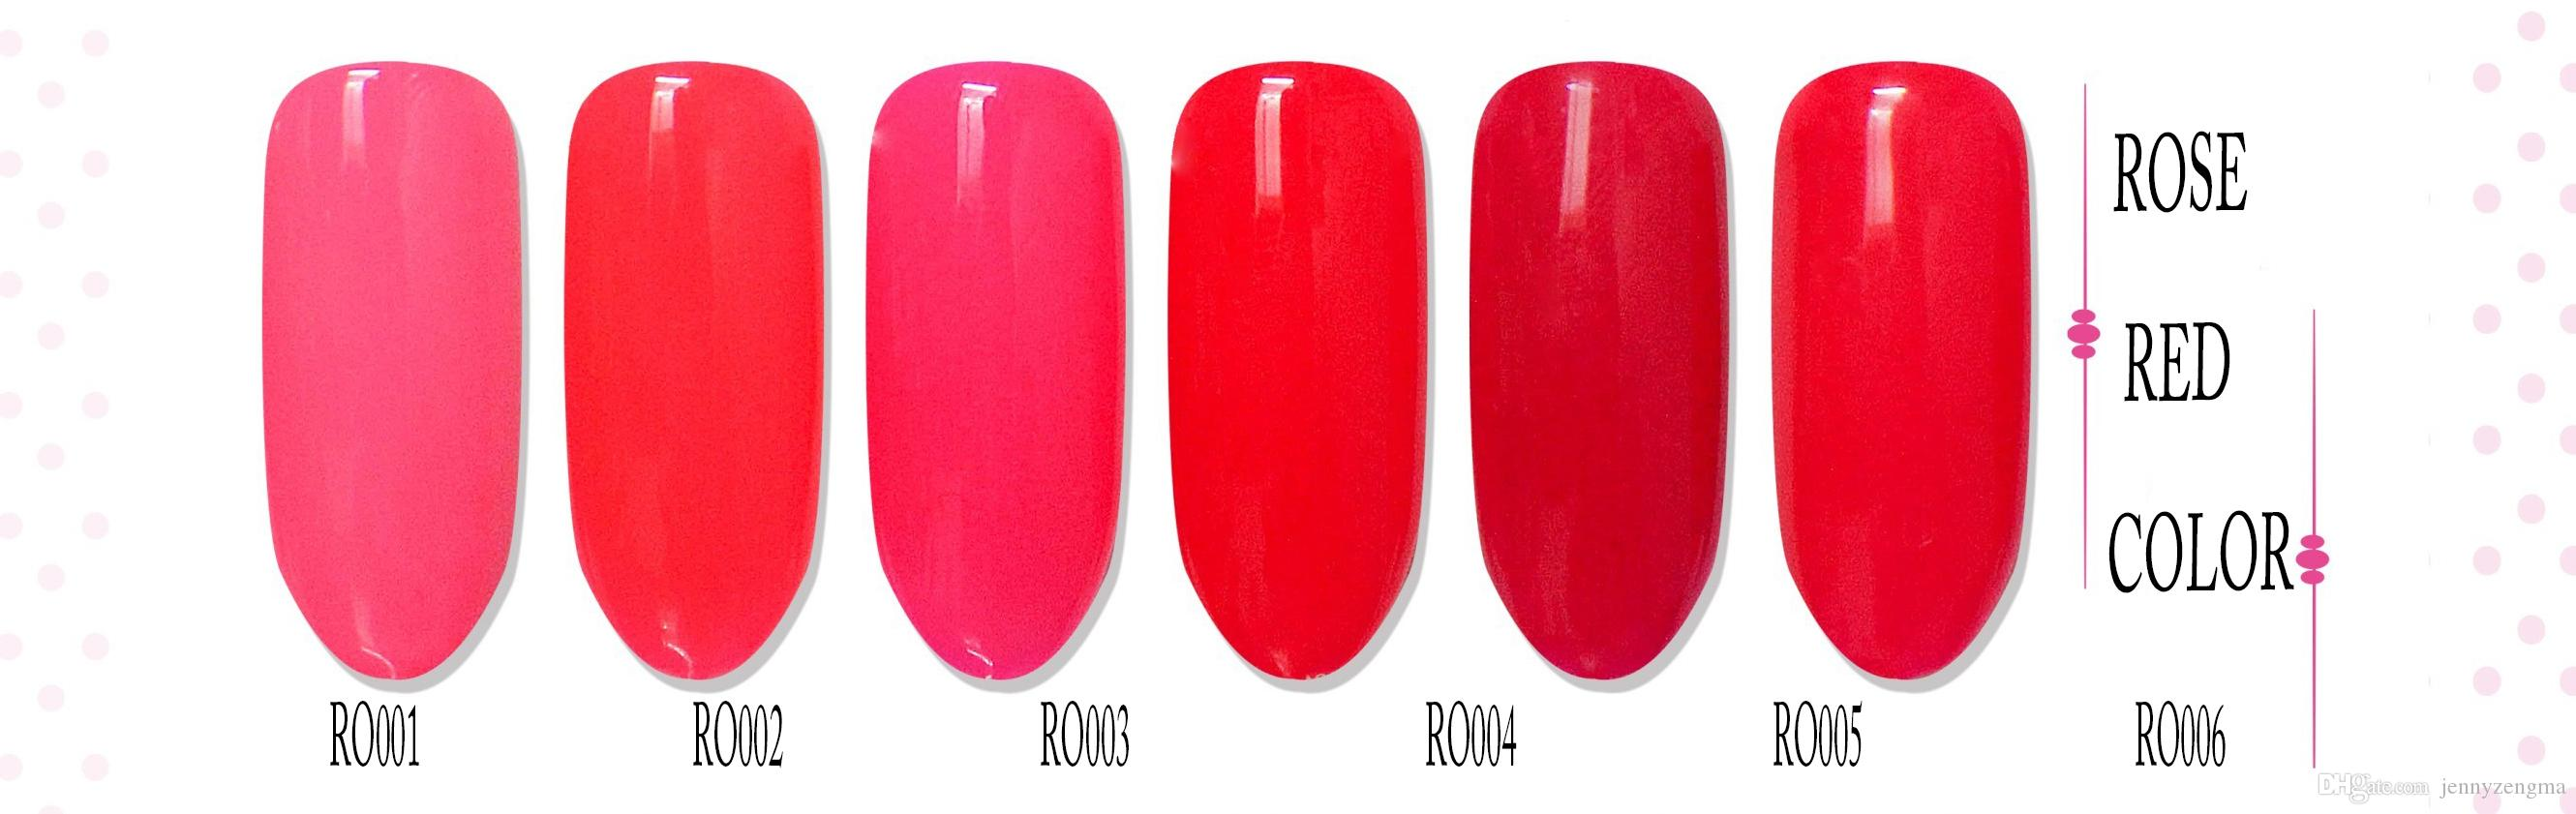 Rose Red Color Nail Art 8ml Woman Beaty Nail Polish Long Lasting ...